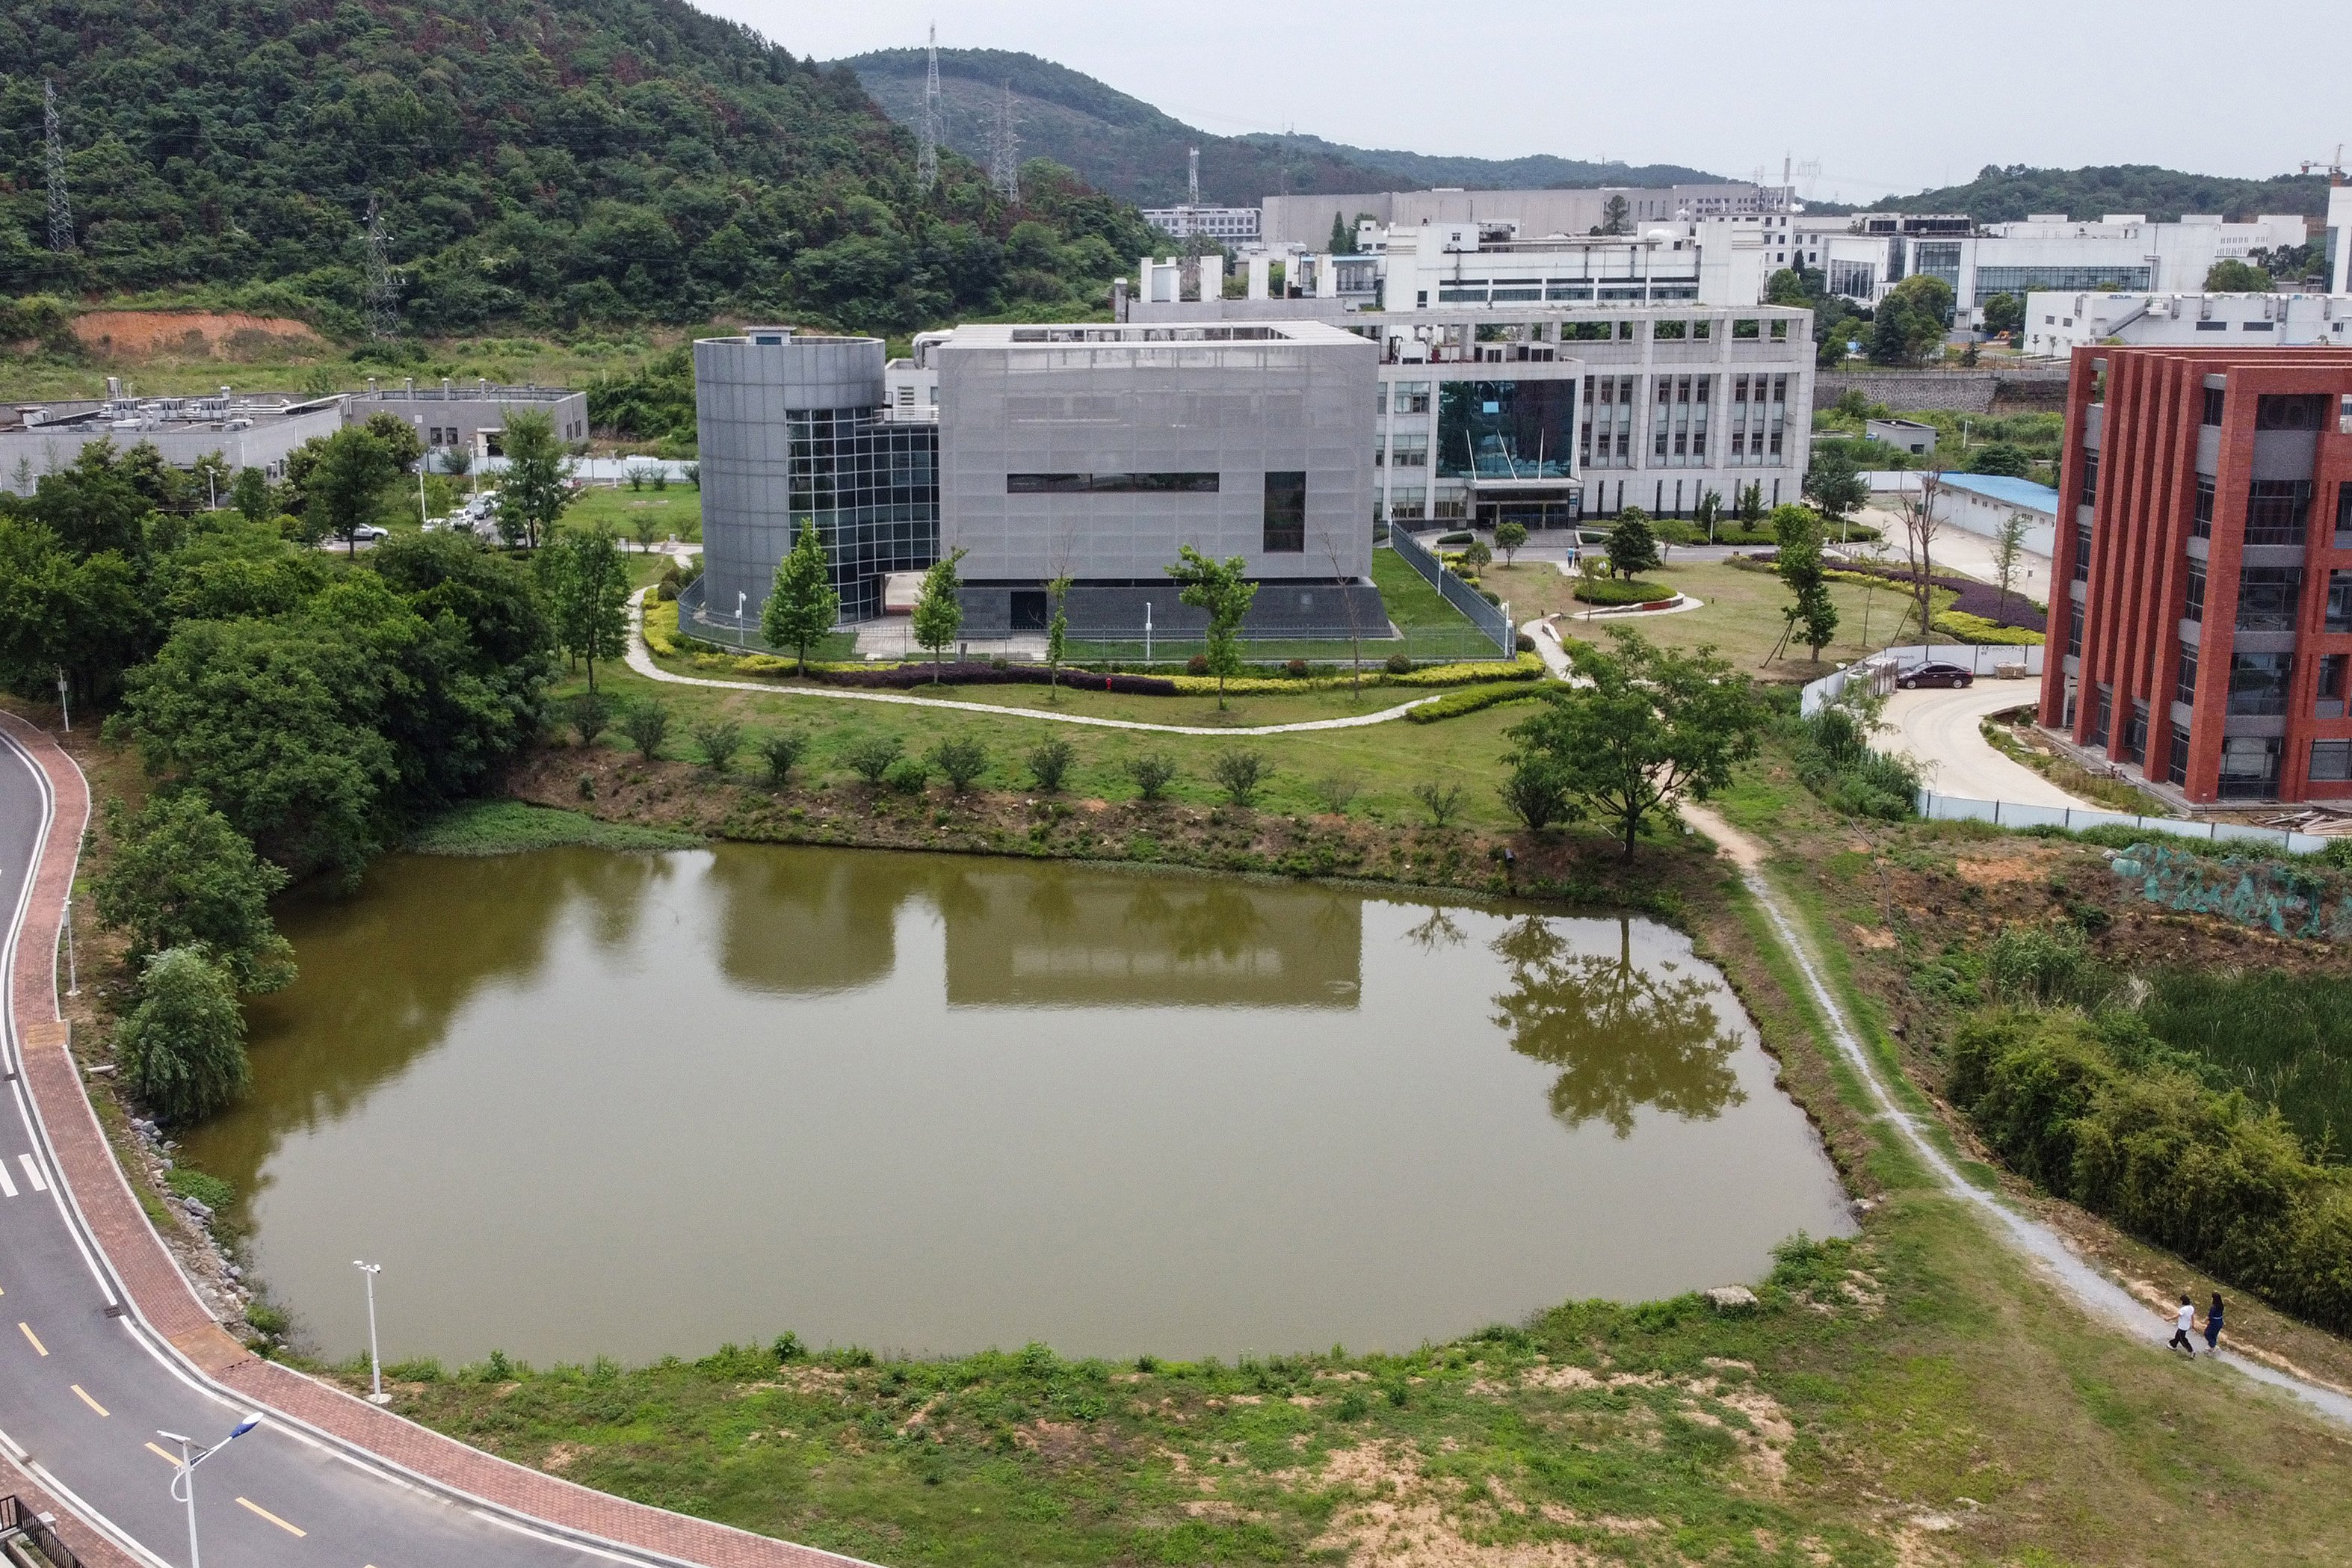 This aerial view shows the P4 laboratory (C) on the campus of the Wuhan Institute of Virology in Wuhan in China's central Hubei province on May 13, 2020. (Photo by HECTOR RETAMAL/AFP via Getty Images)